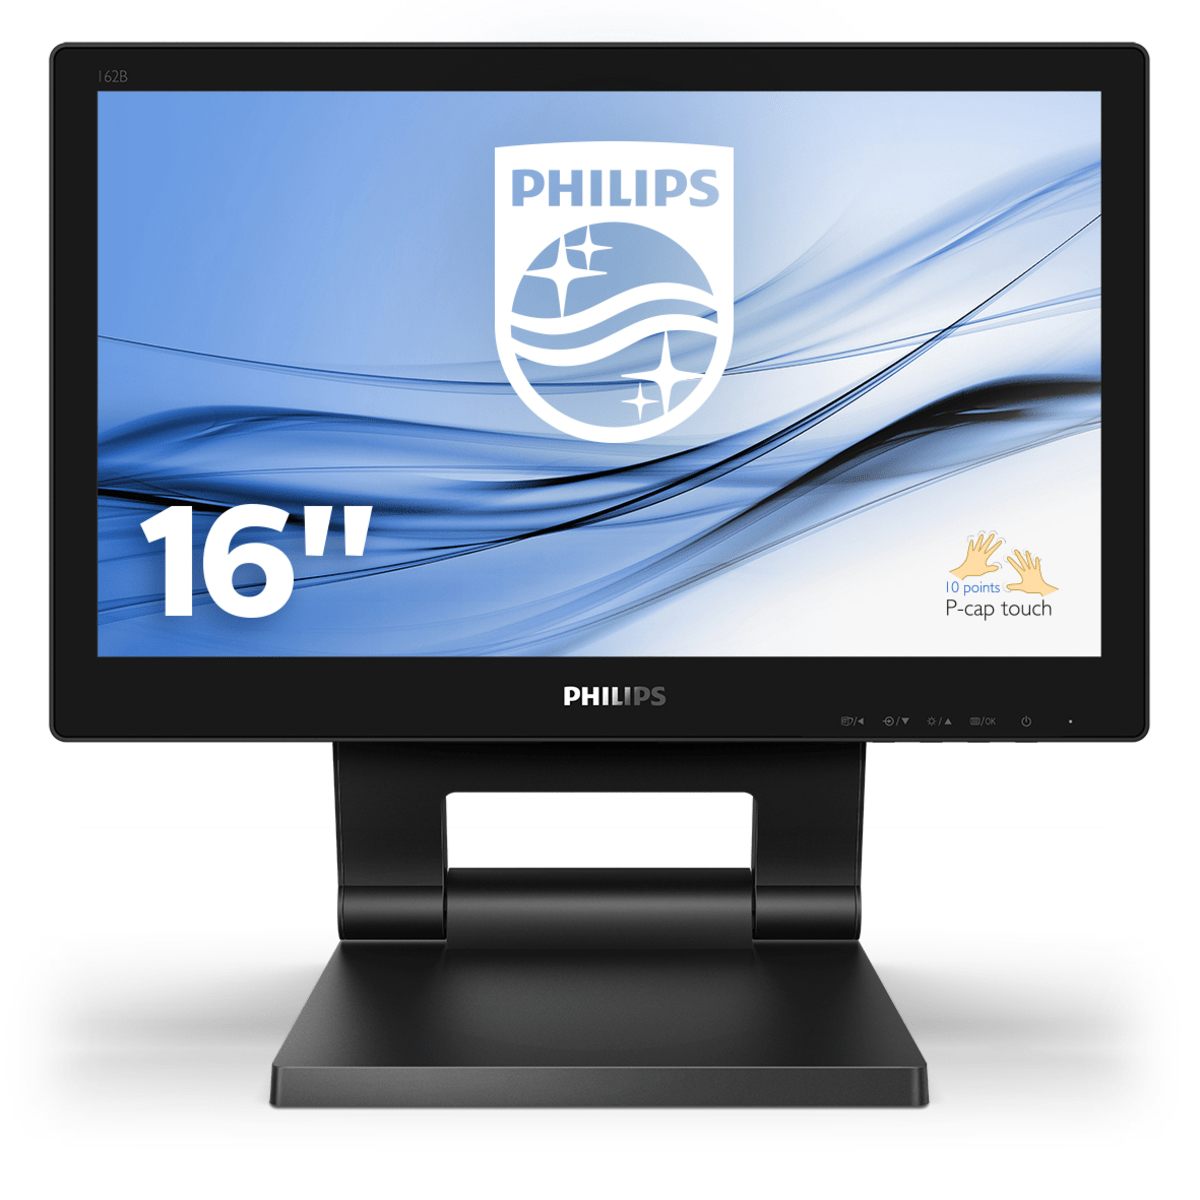 Philips 162B9T/00 computer monitor 39.6 cm (15.6